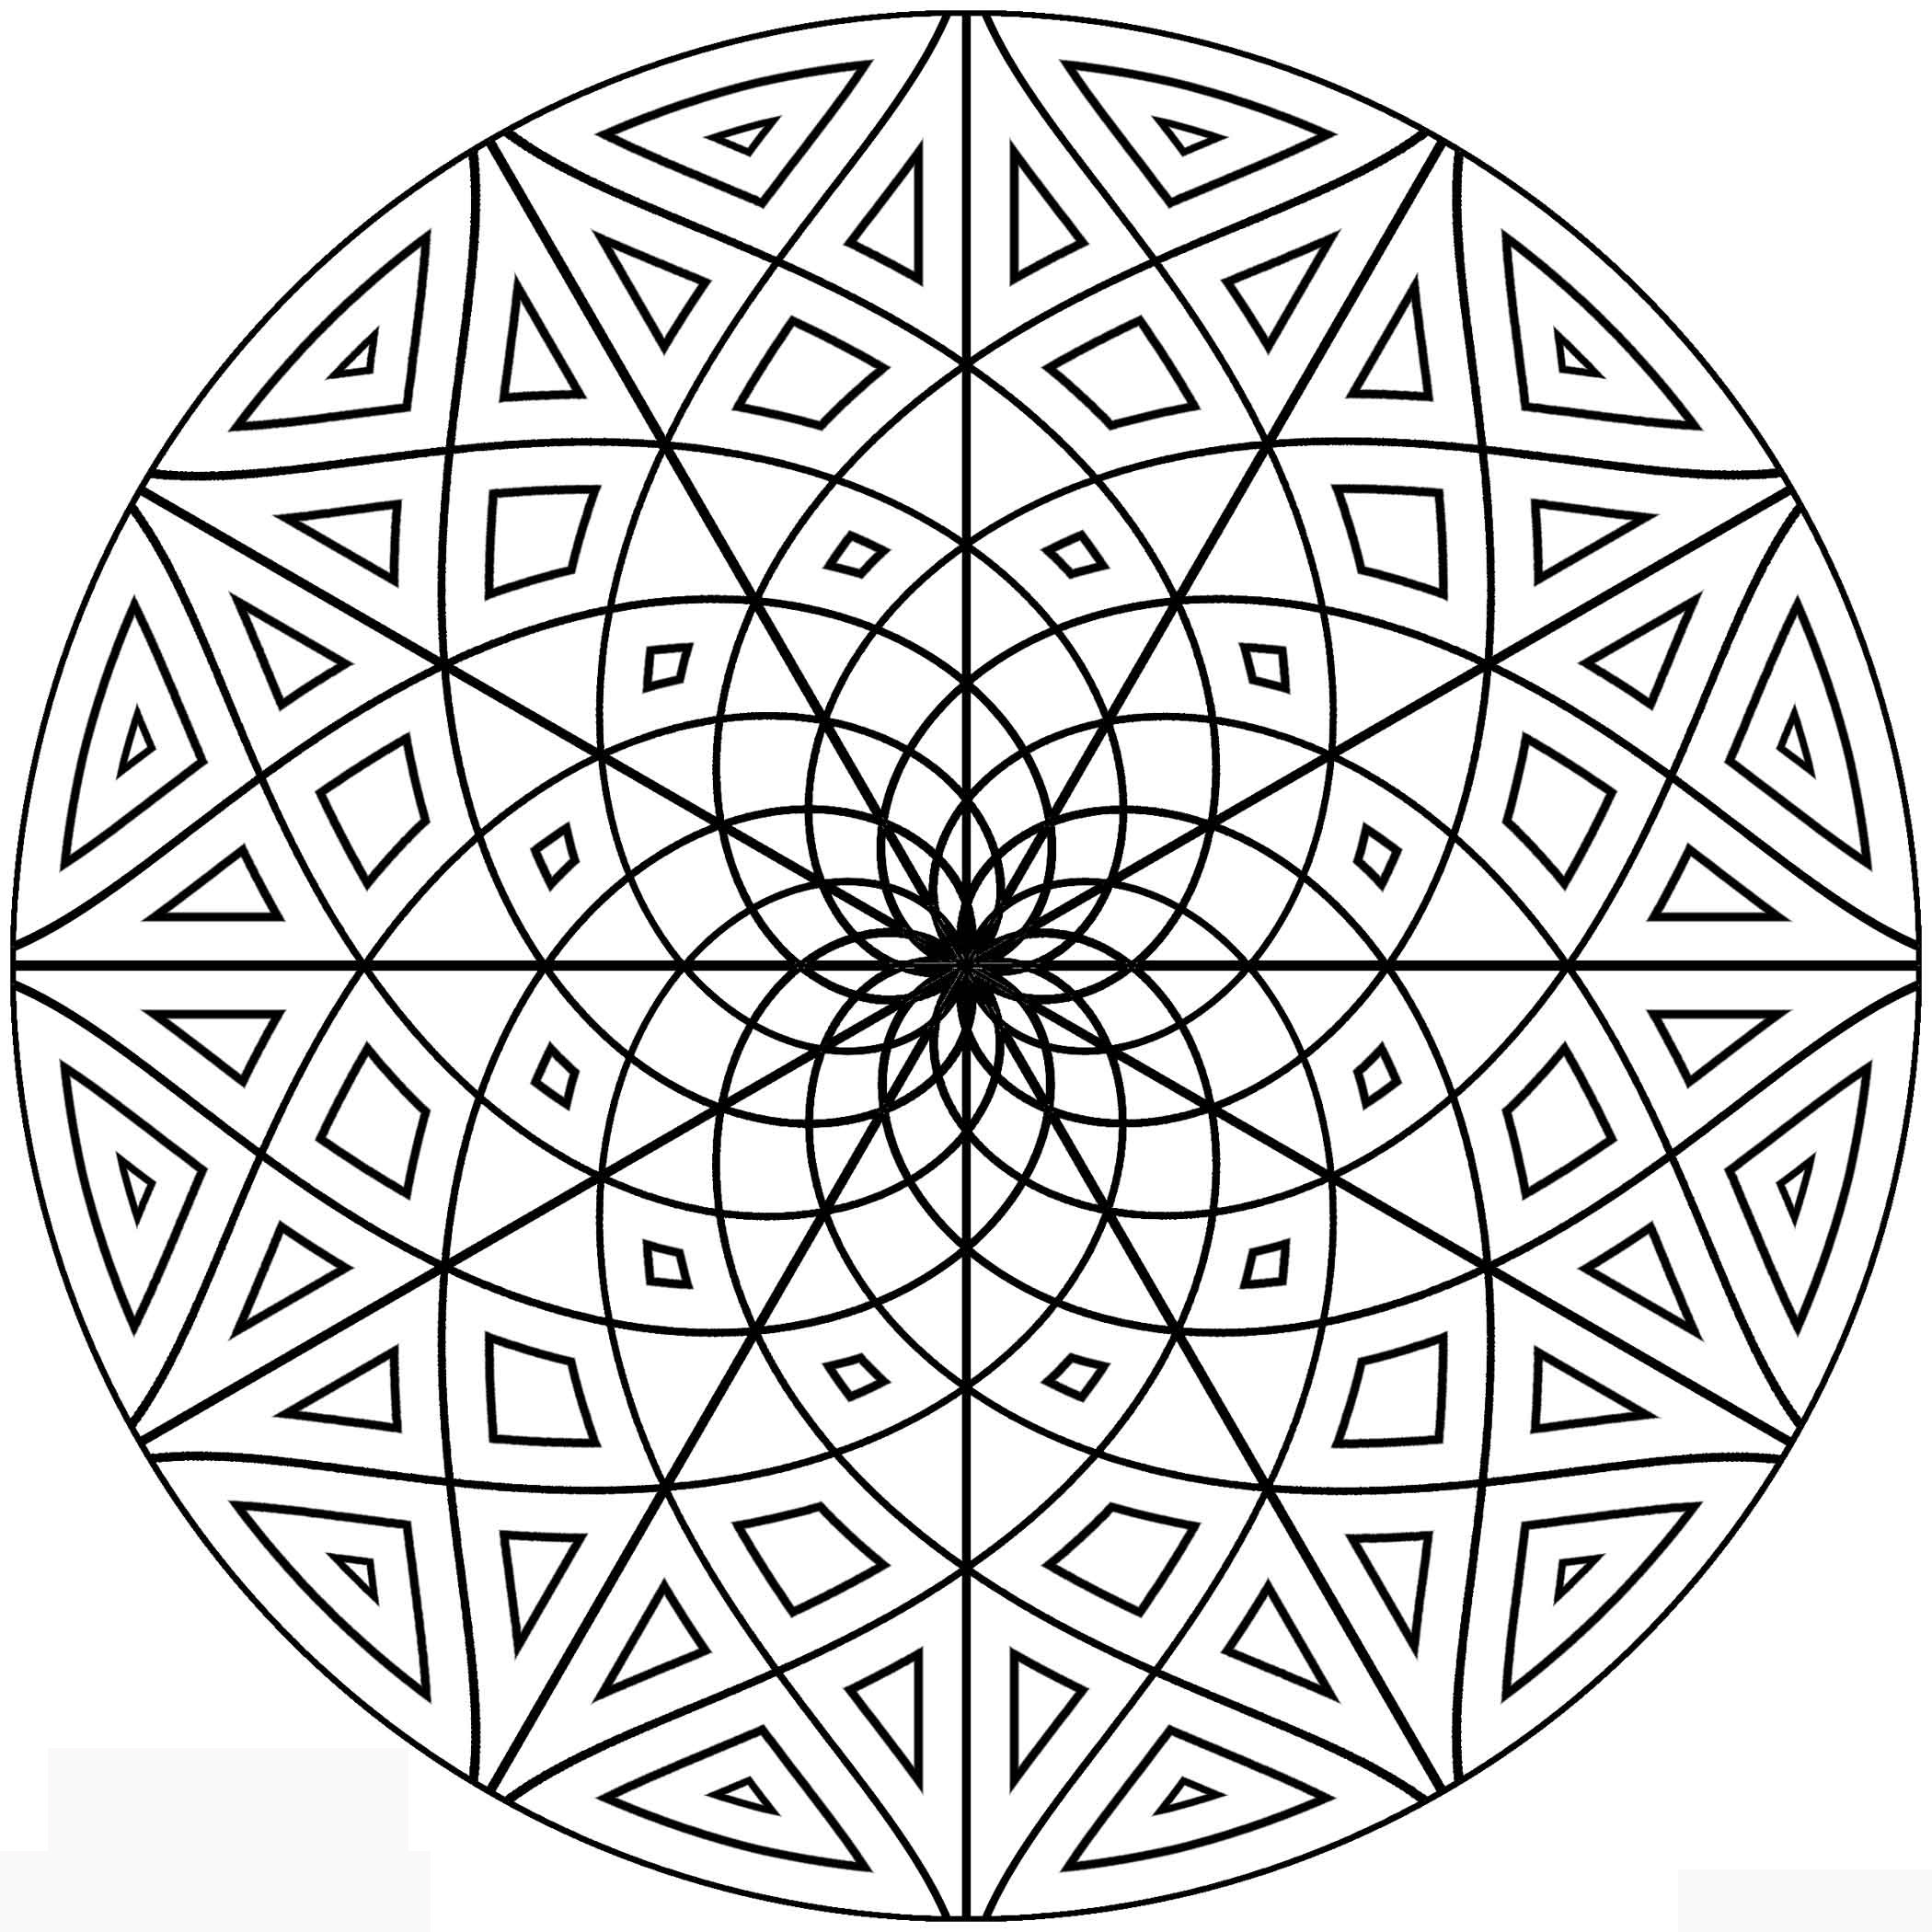 free geometric coloring pages - Free Printable Coloring Pages For Adults Geometric